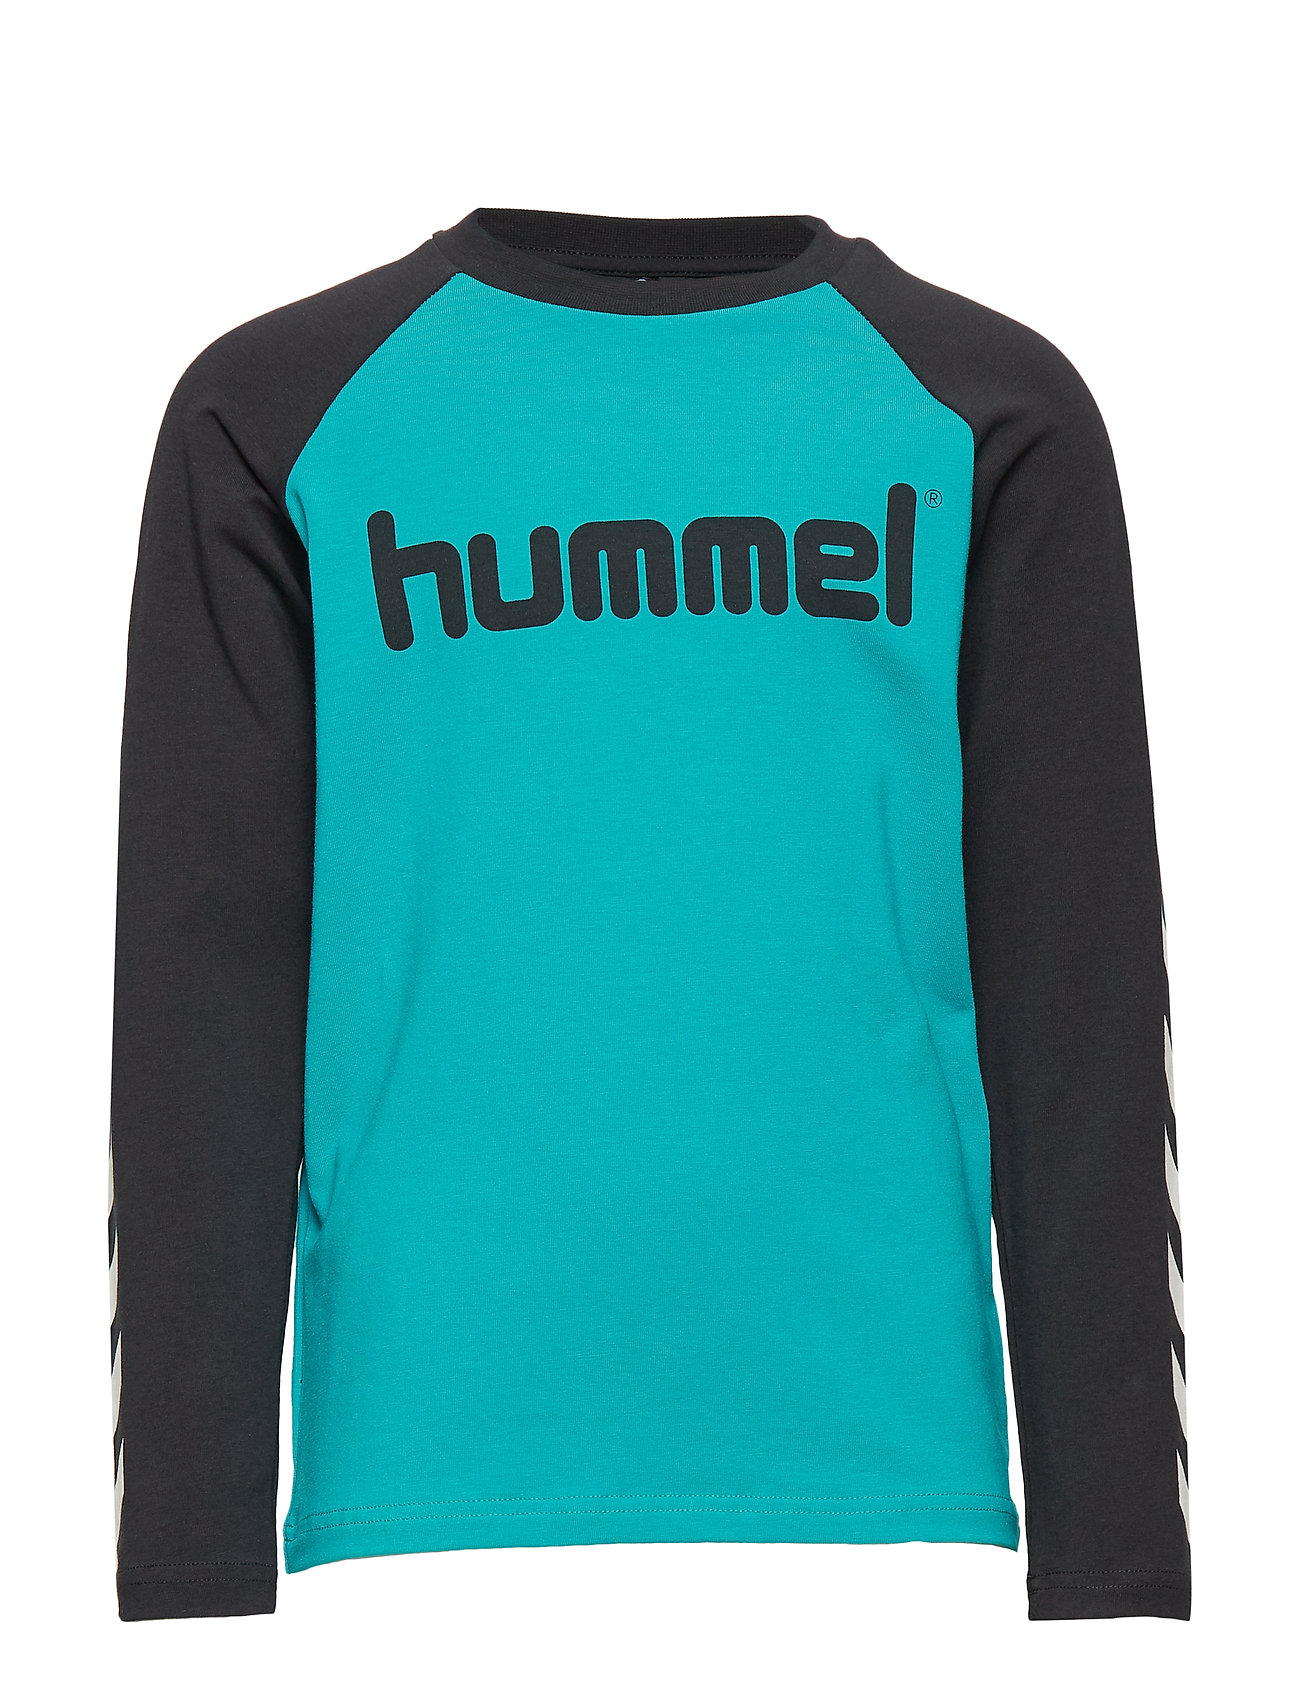 Hummel hmlBOYS T-SHIRT L/S - BLACK/LAKE BLUE